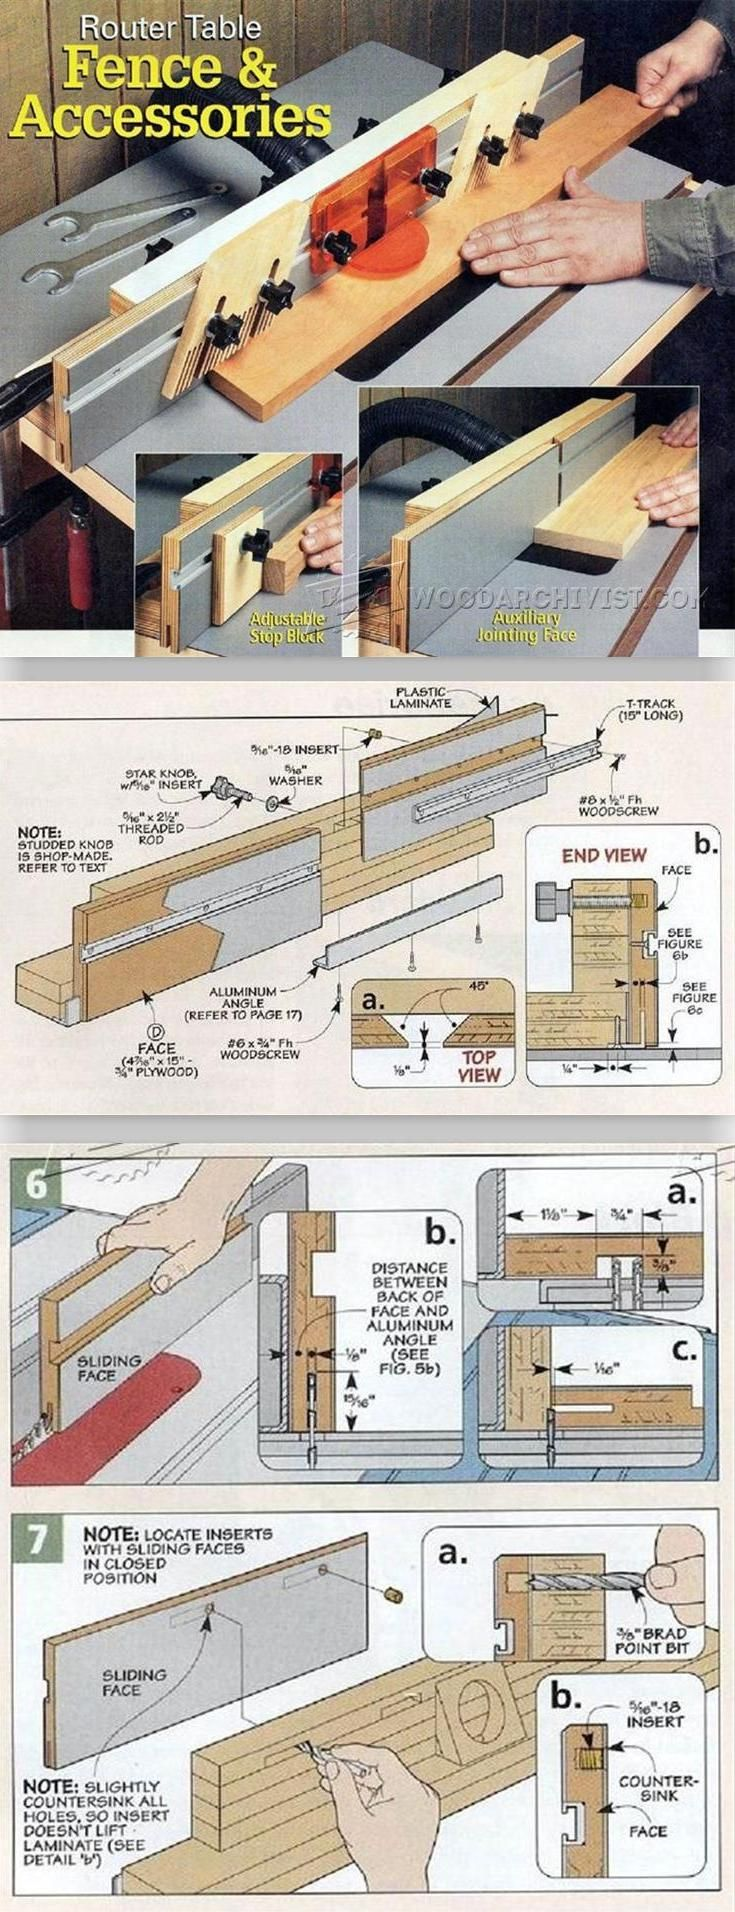 Build Router Table Fence - Router Tips, Jigs and Fixtures | WoodArchivist.com